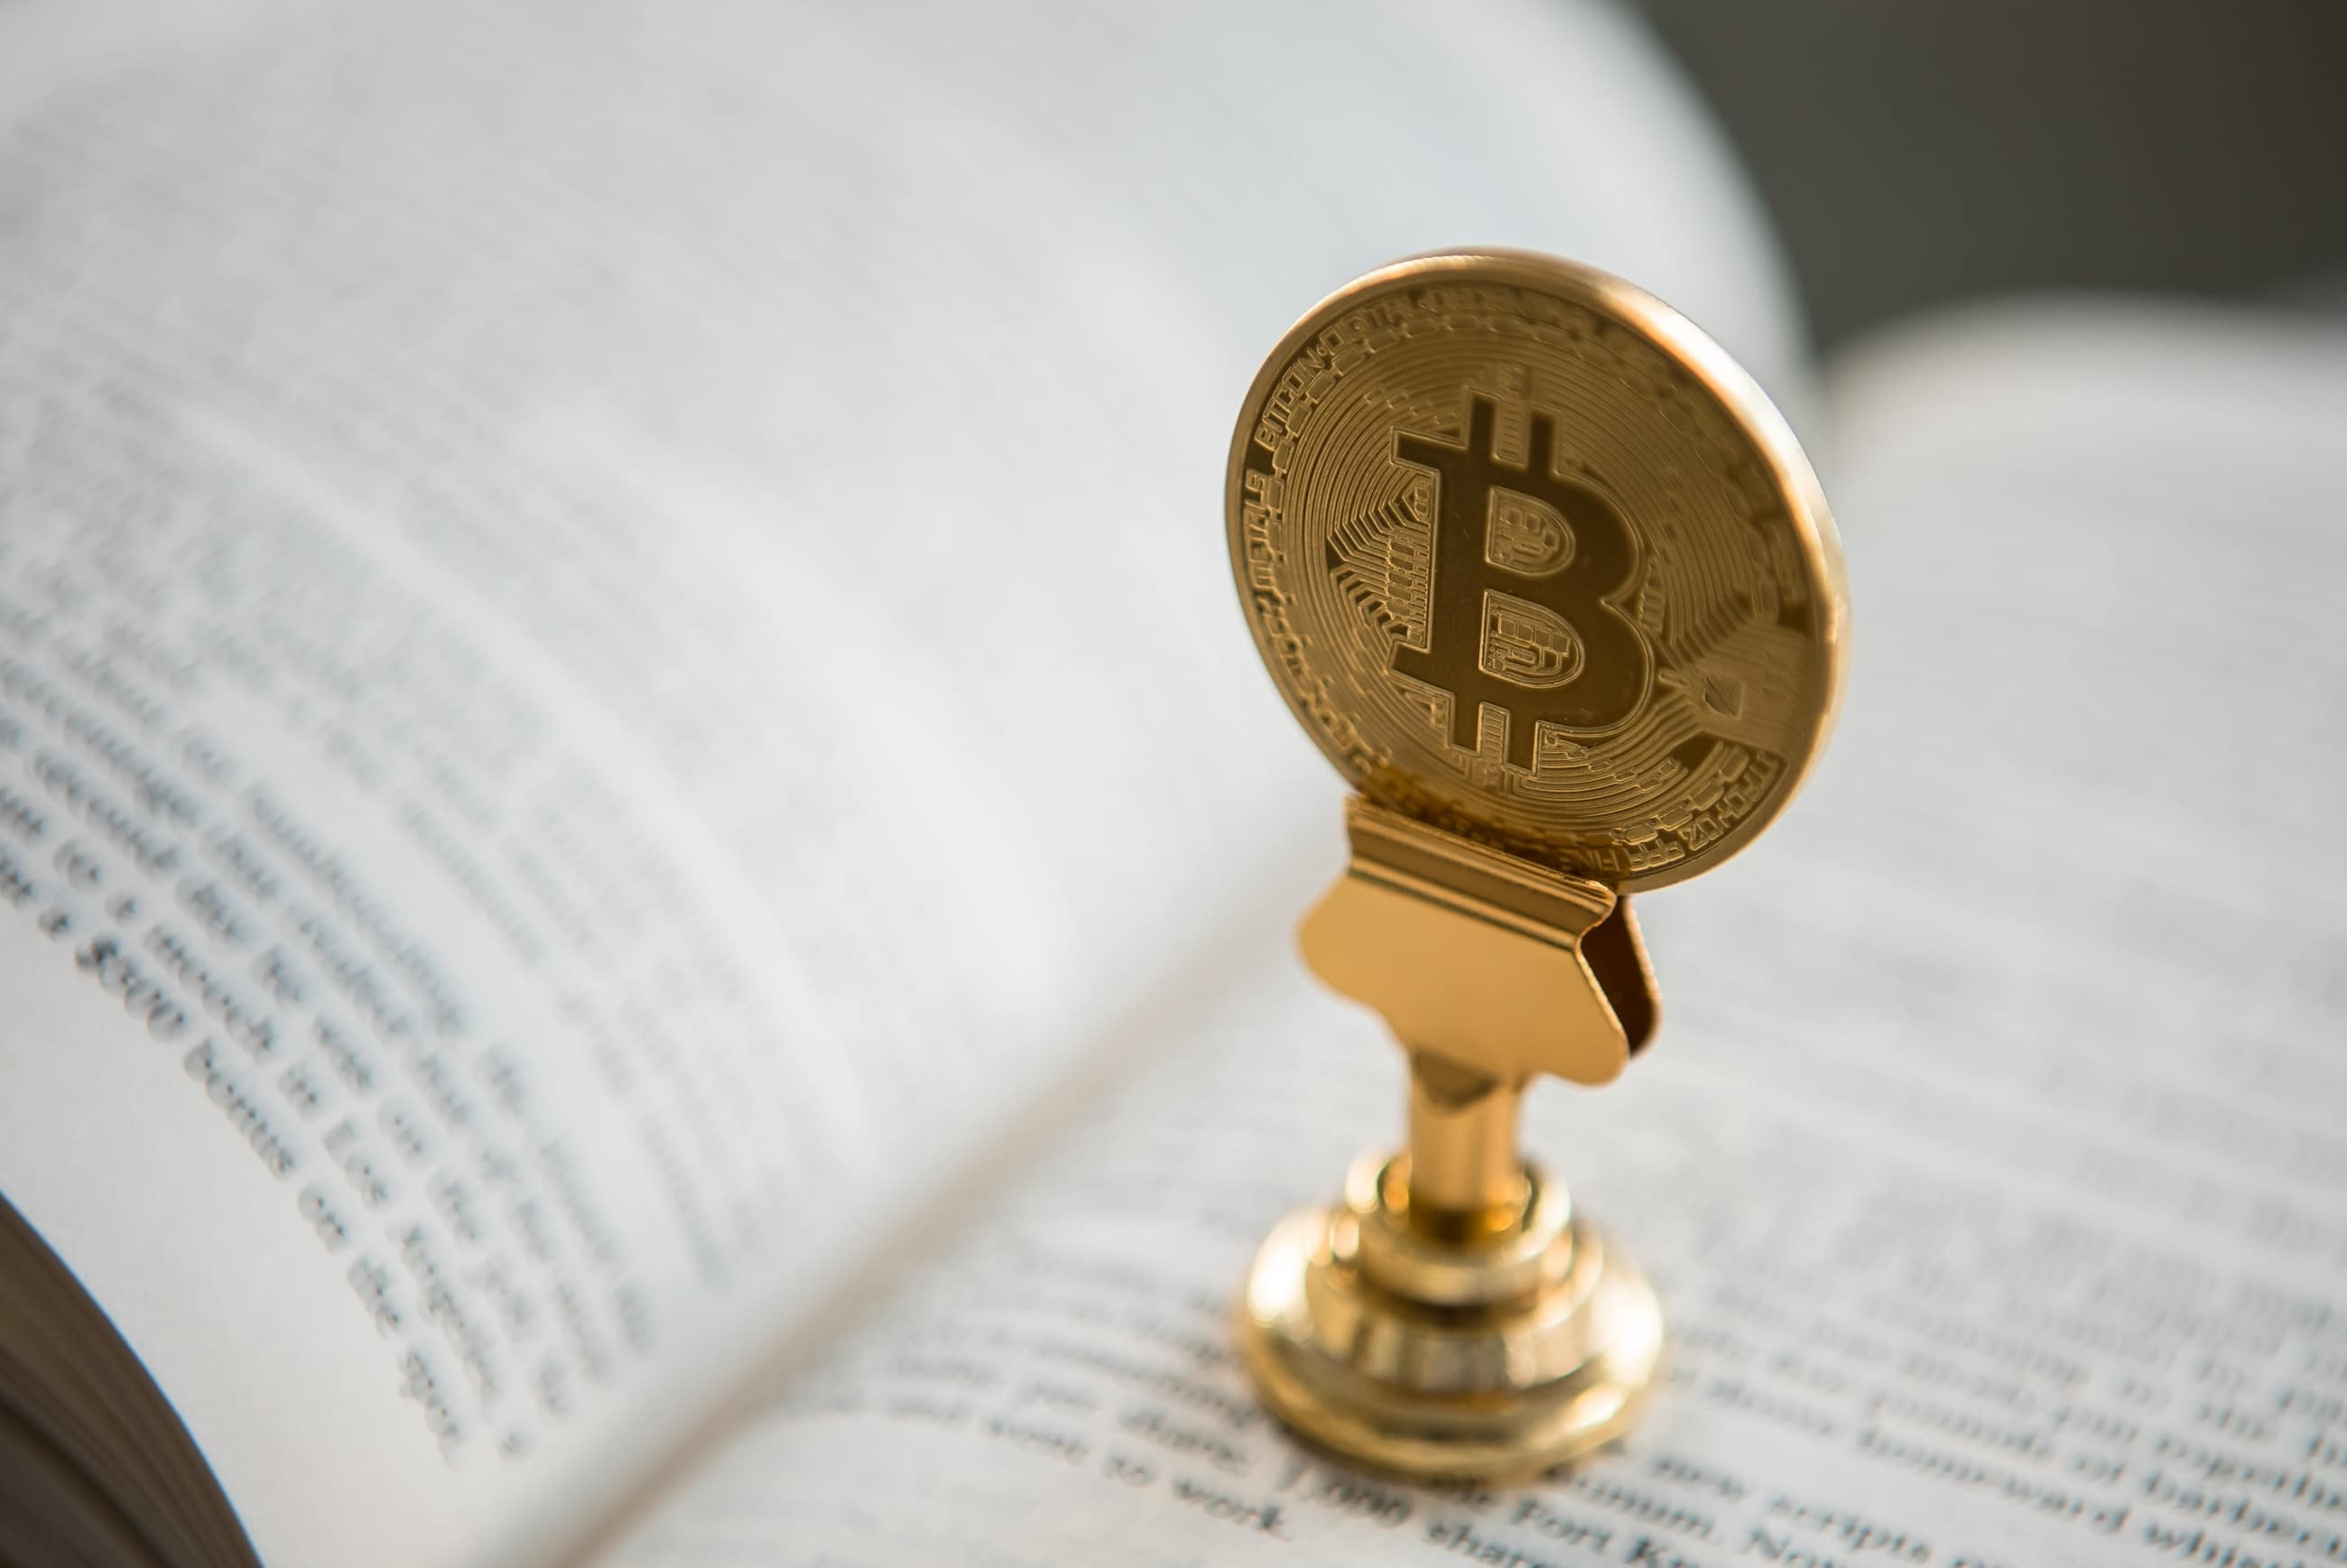 How to buy cryptocurrencies safely | Step by step guide